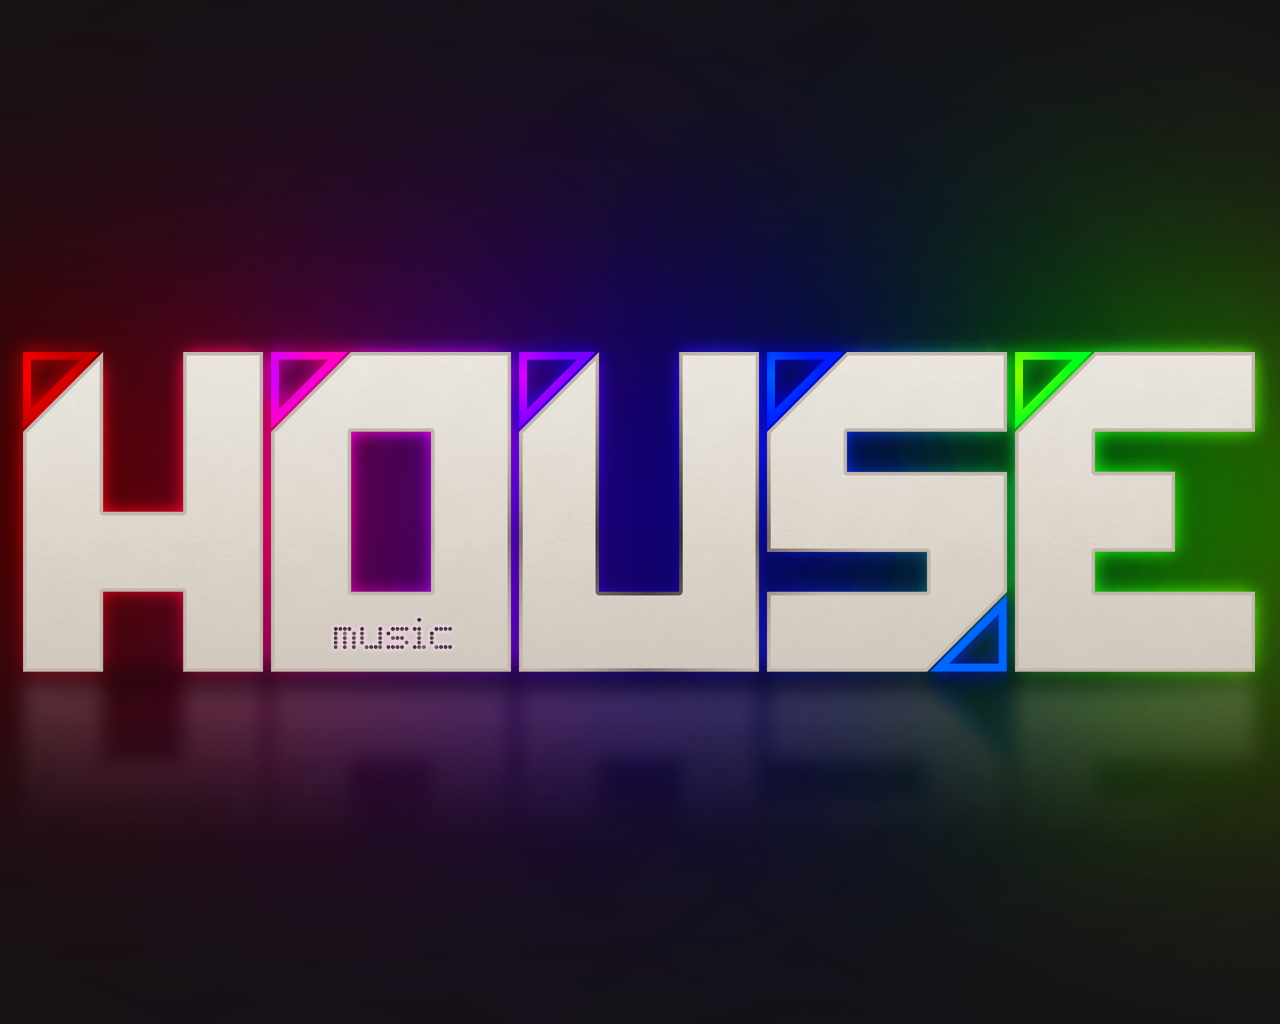 mix.dj Local Mix 1 by djshawnyb in Soulful House Party